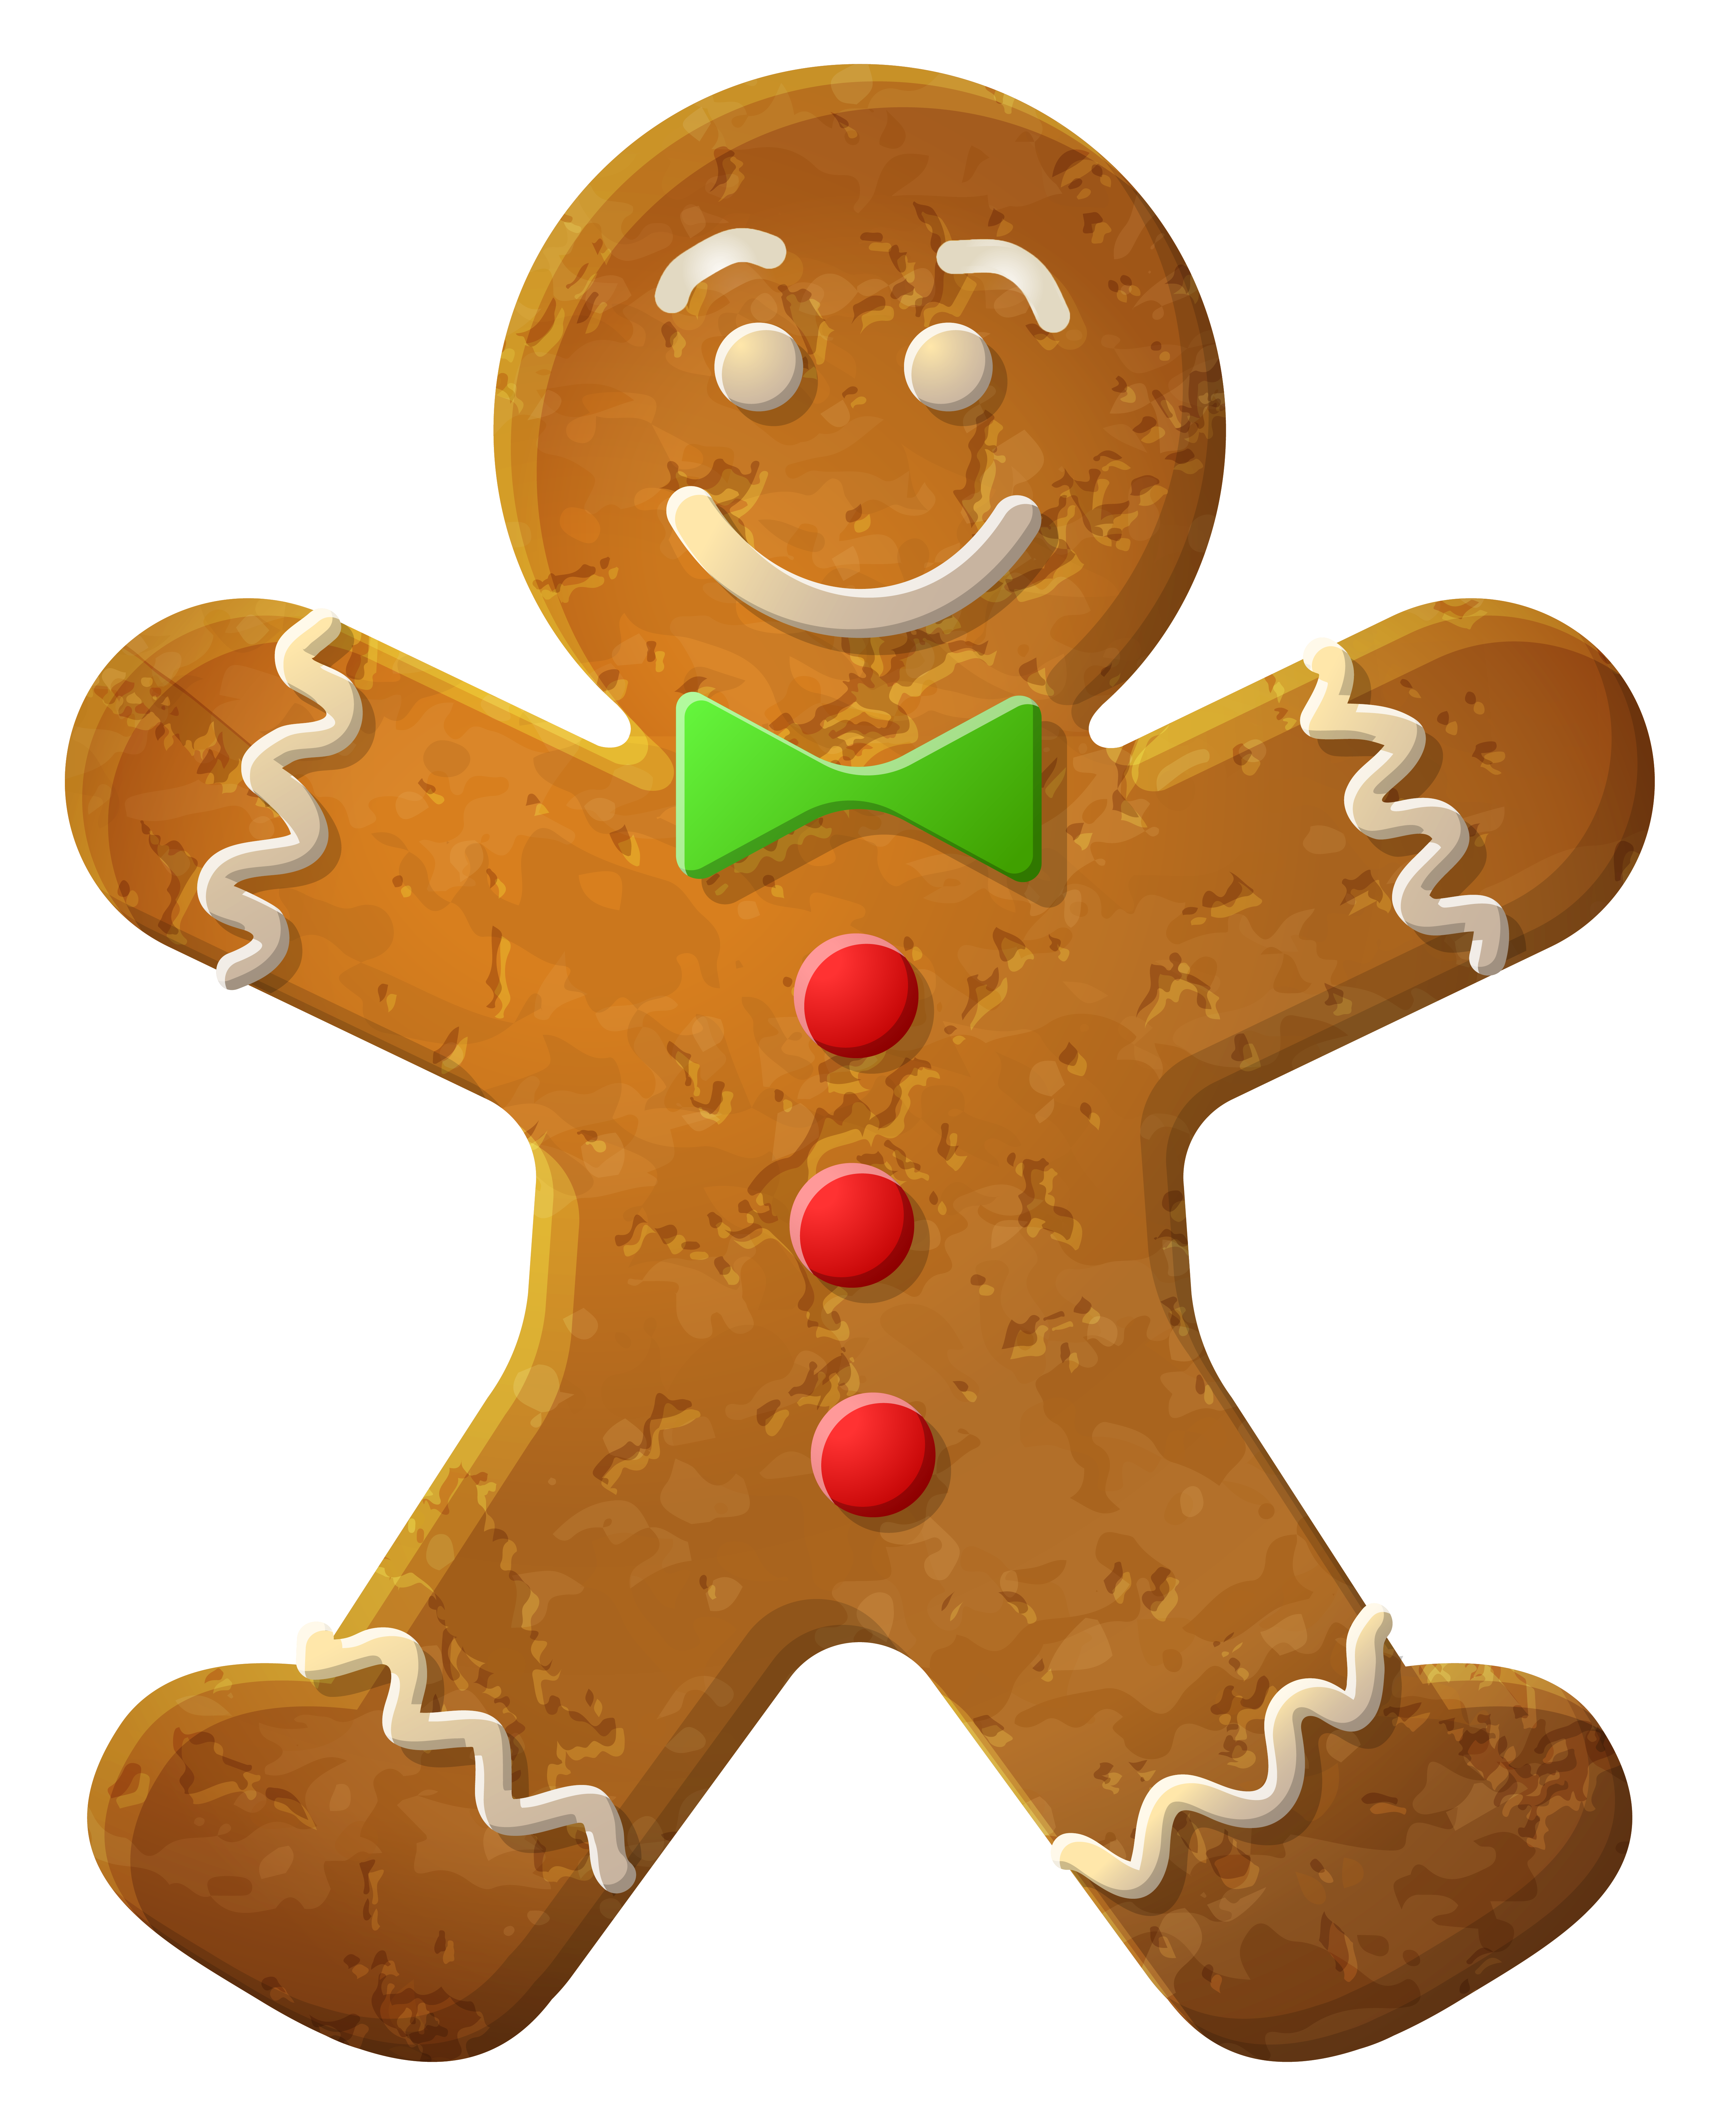 Silhouette ornaments with flowers for cookies png. Gingerbread man ornament clip